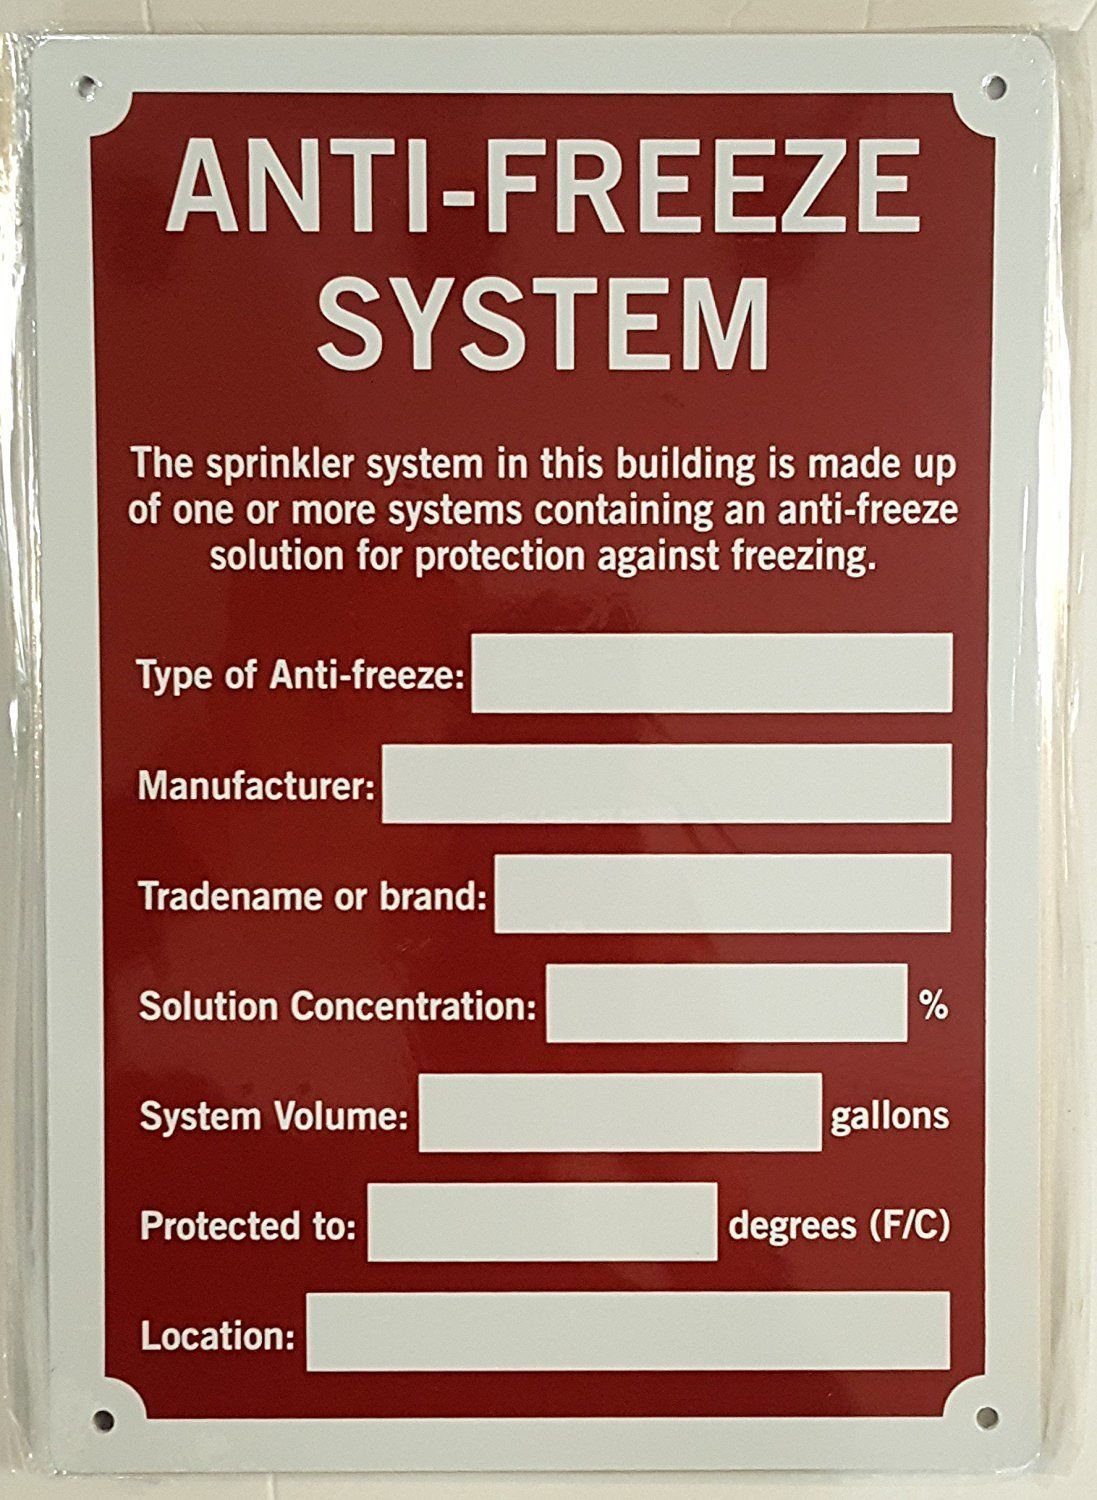 Details about antifreeze system sign aluminium rust free